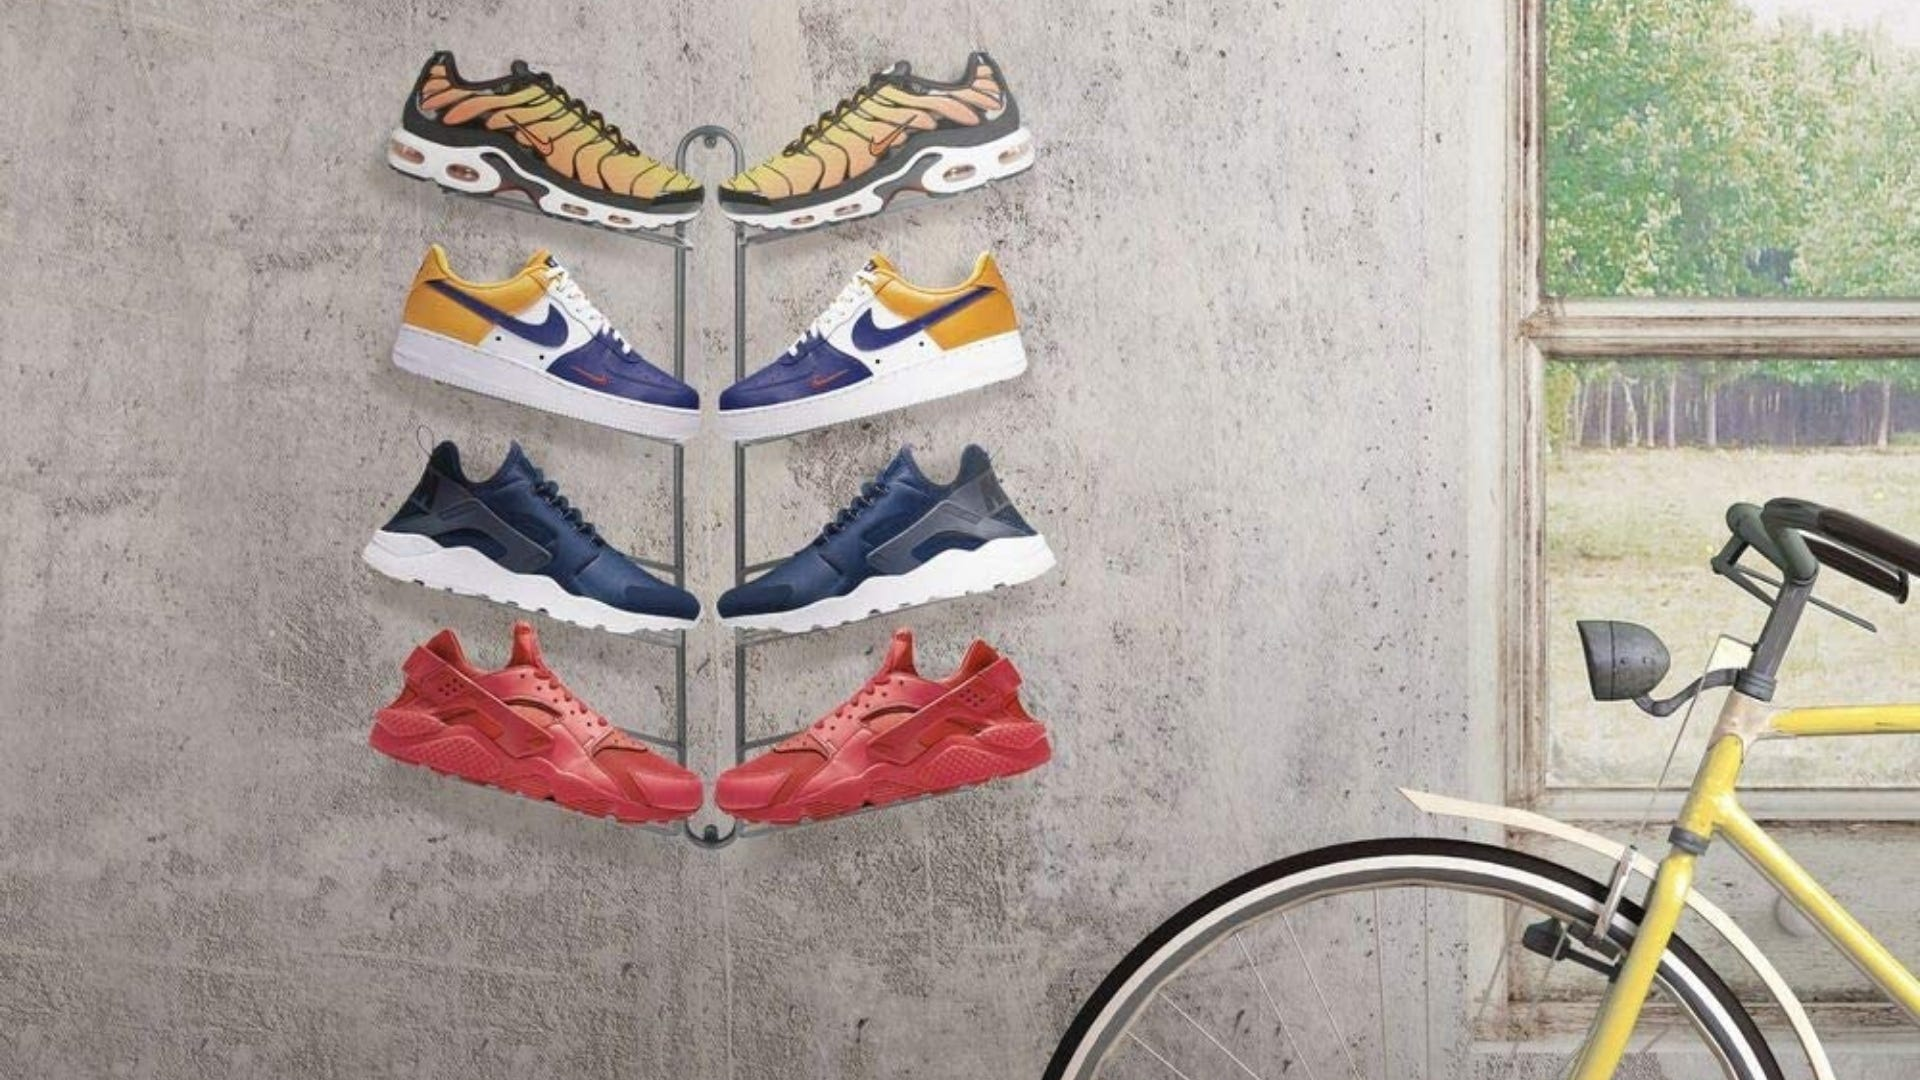 A display rack on a wall holding four pairs of shoes